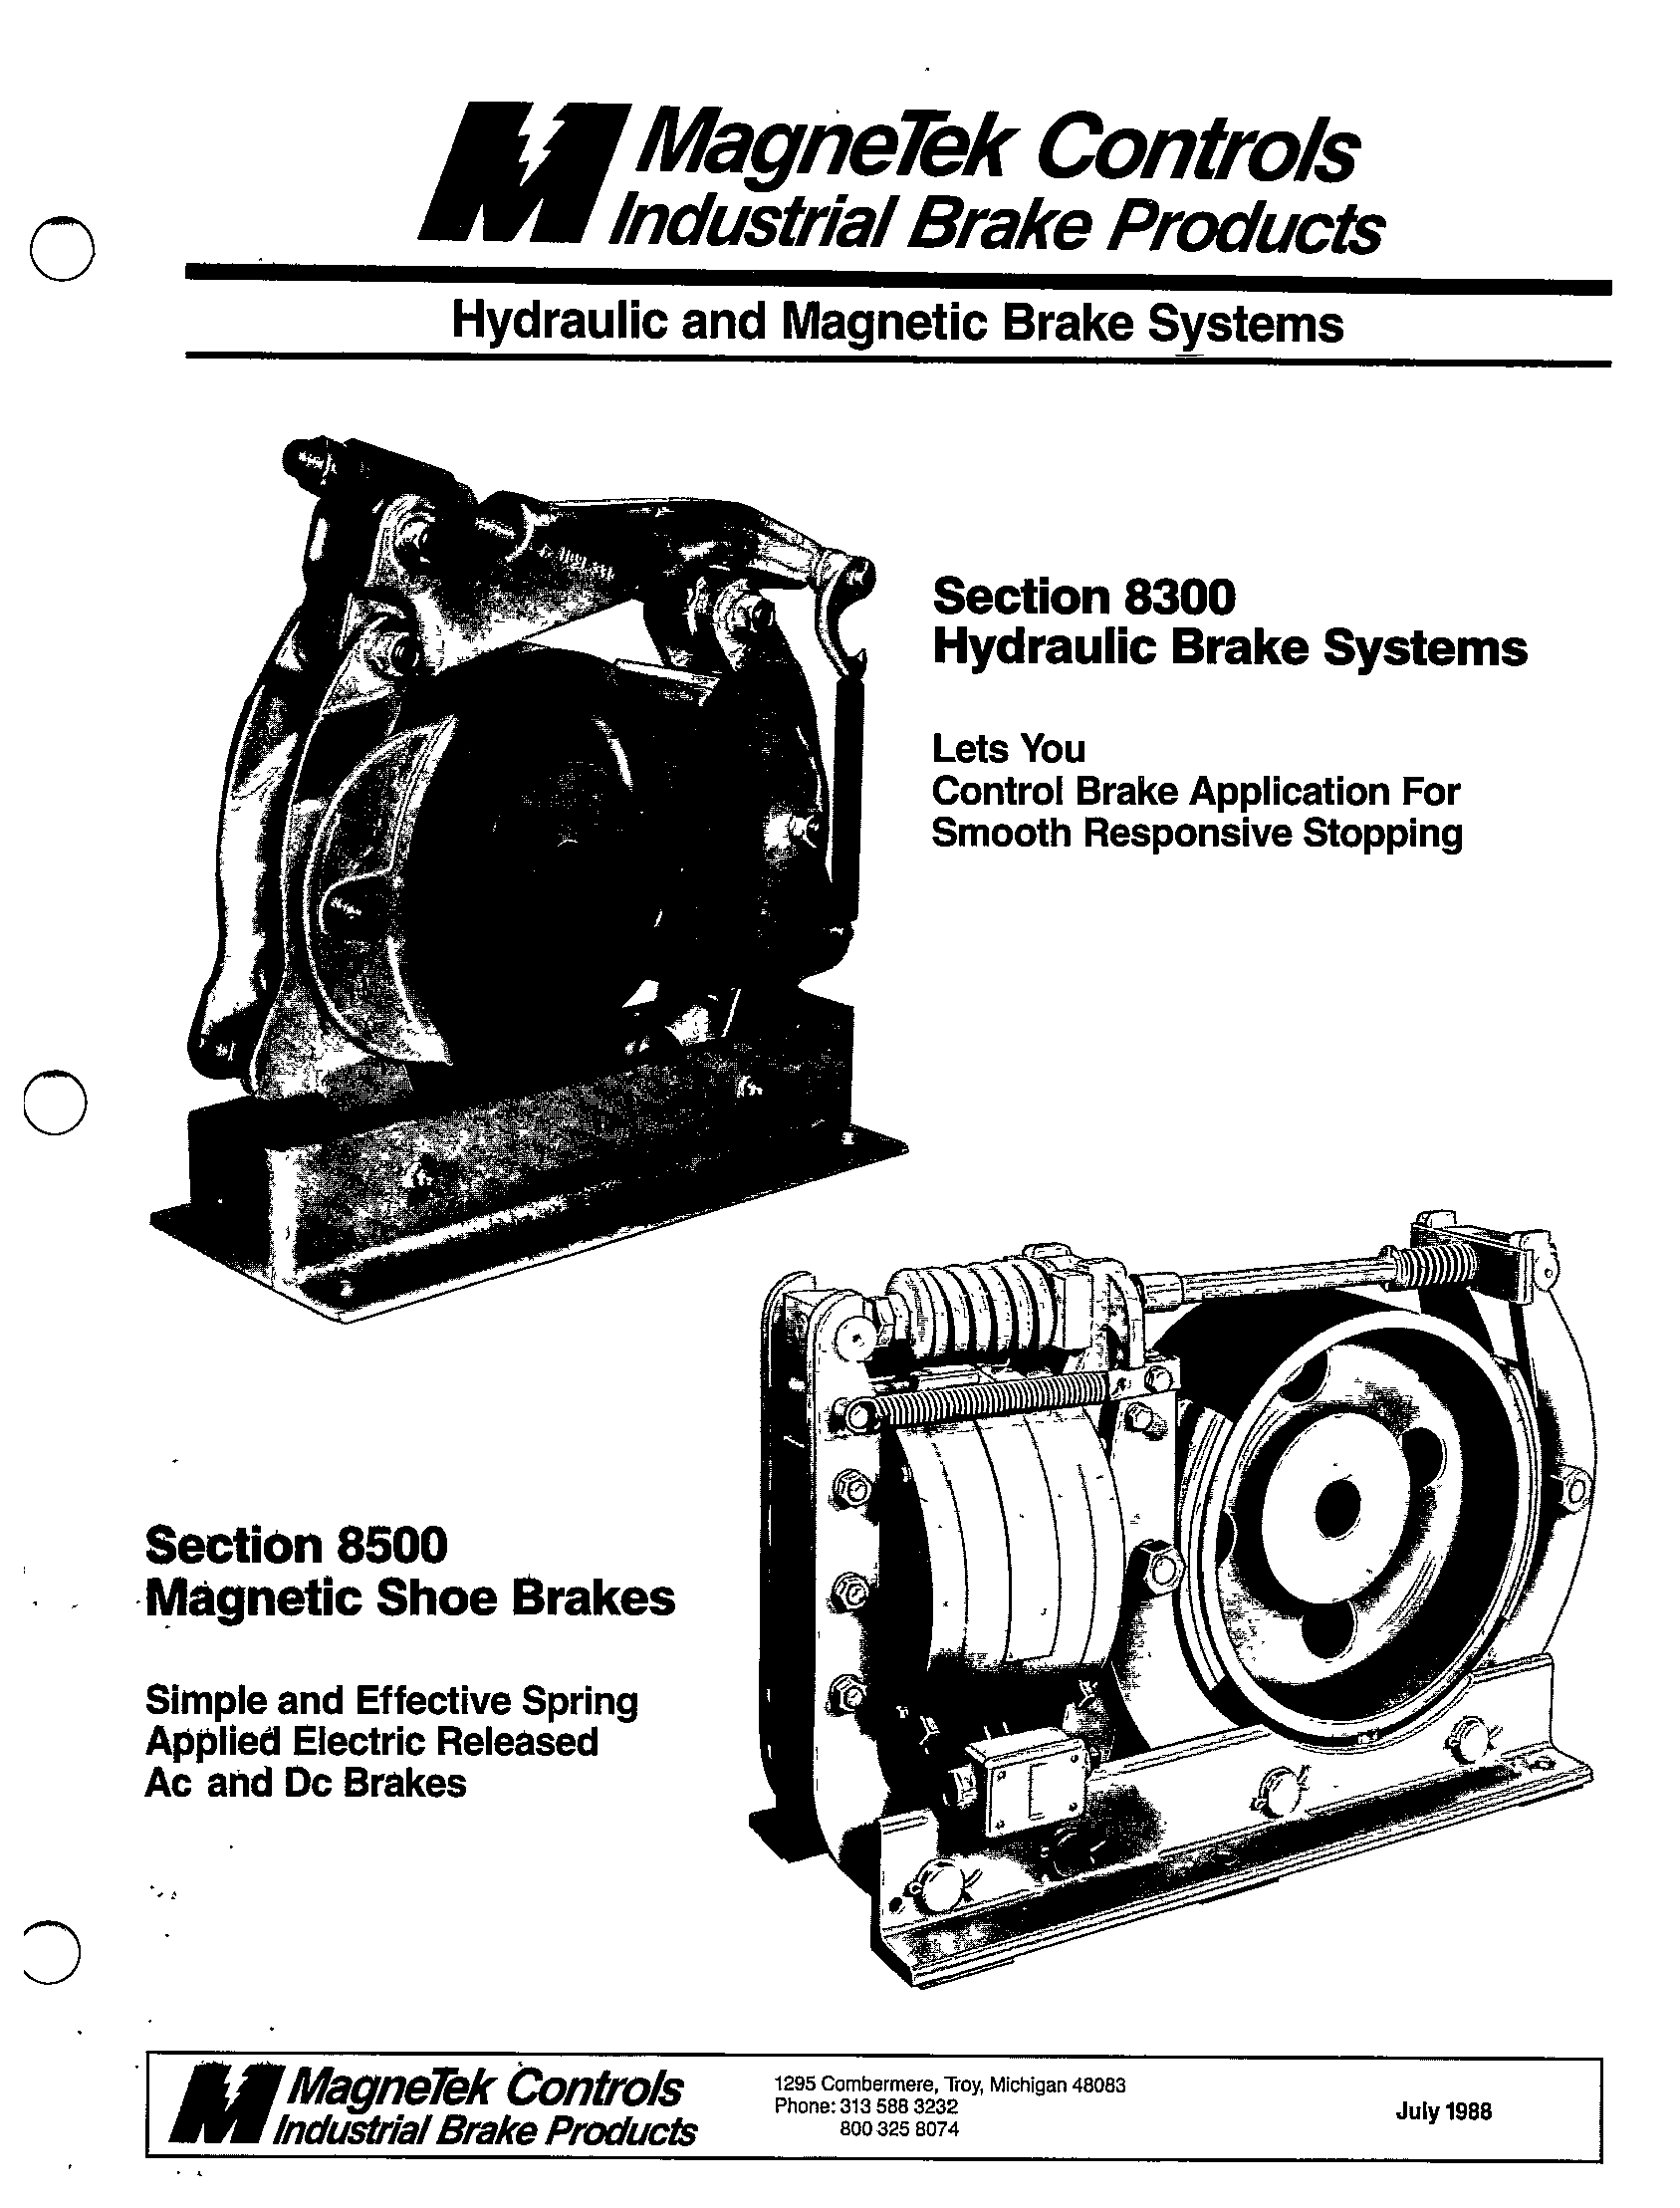 SECTION 8300 HYDRAULIC BRAKE SYSTEMS AND SECTION 8500